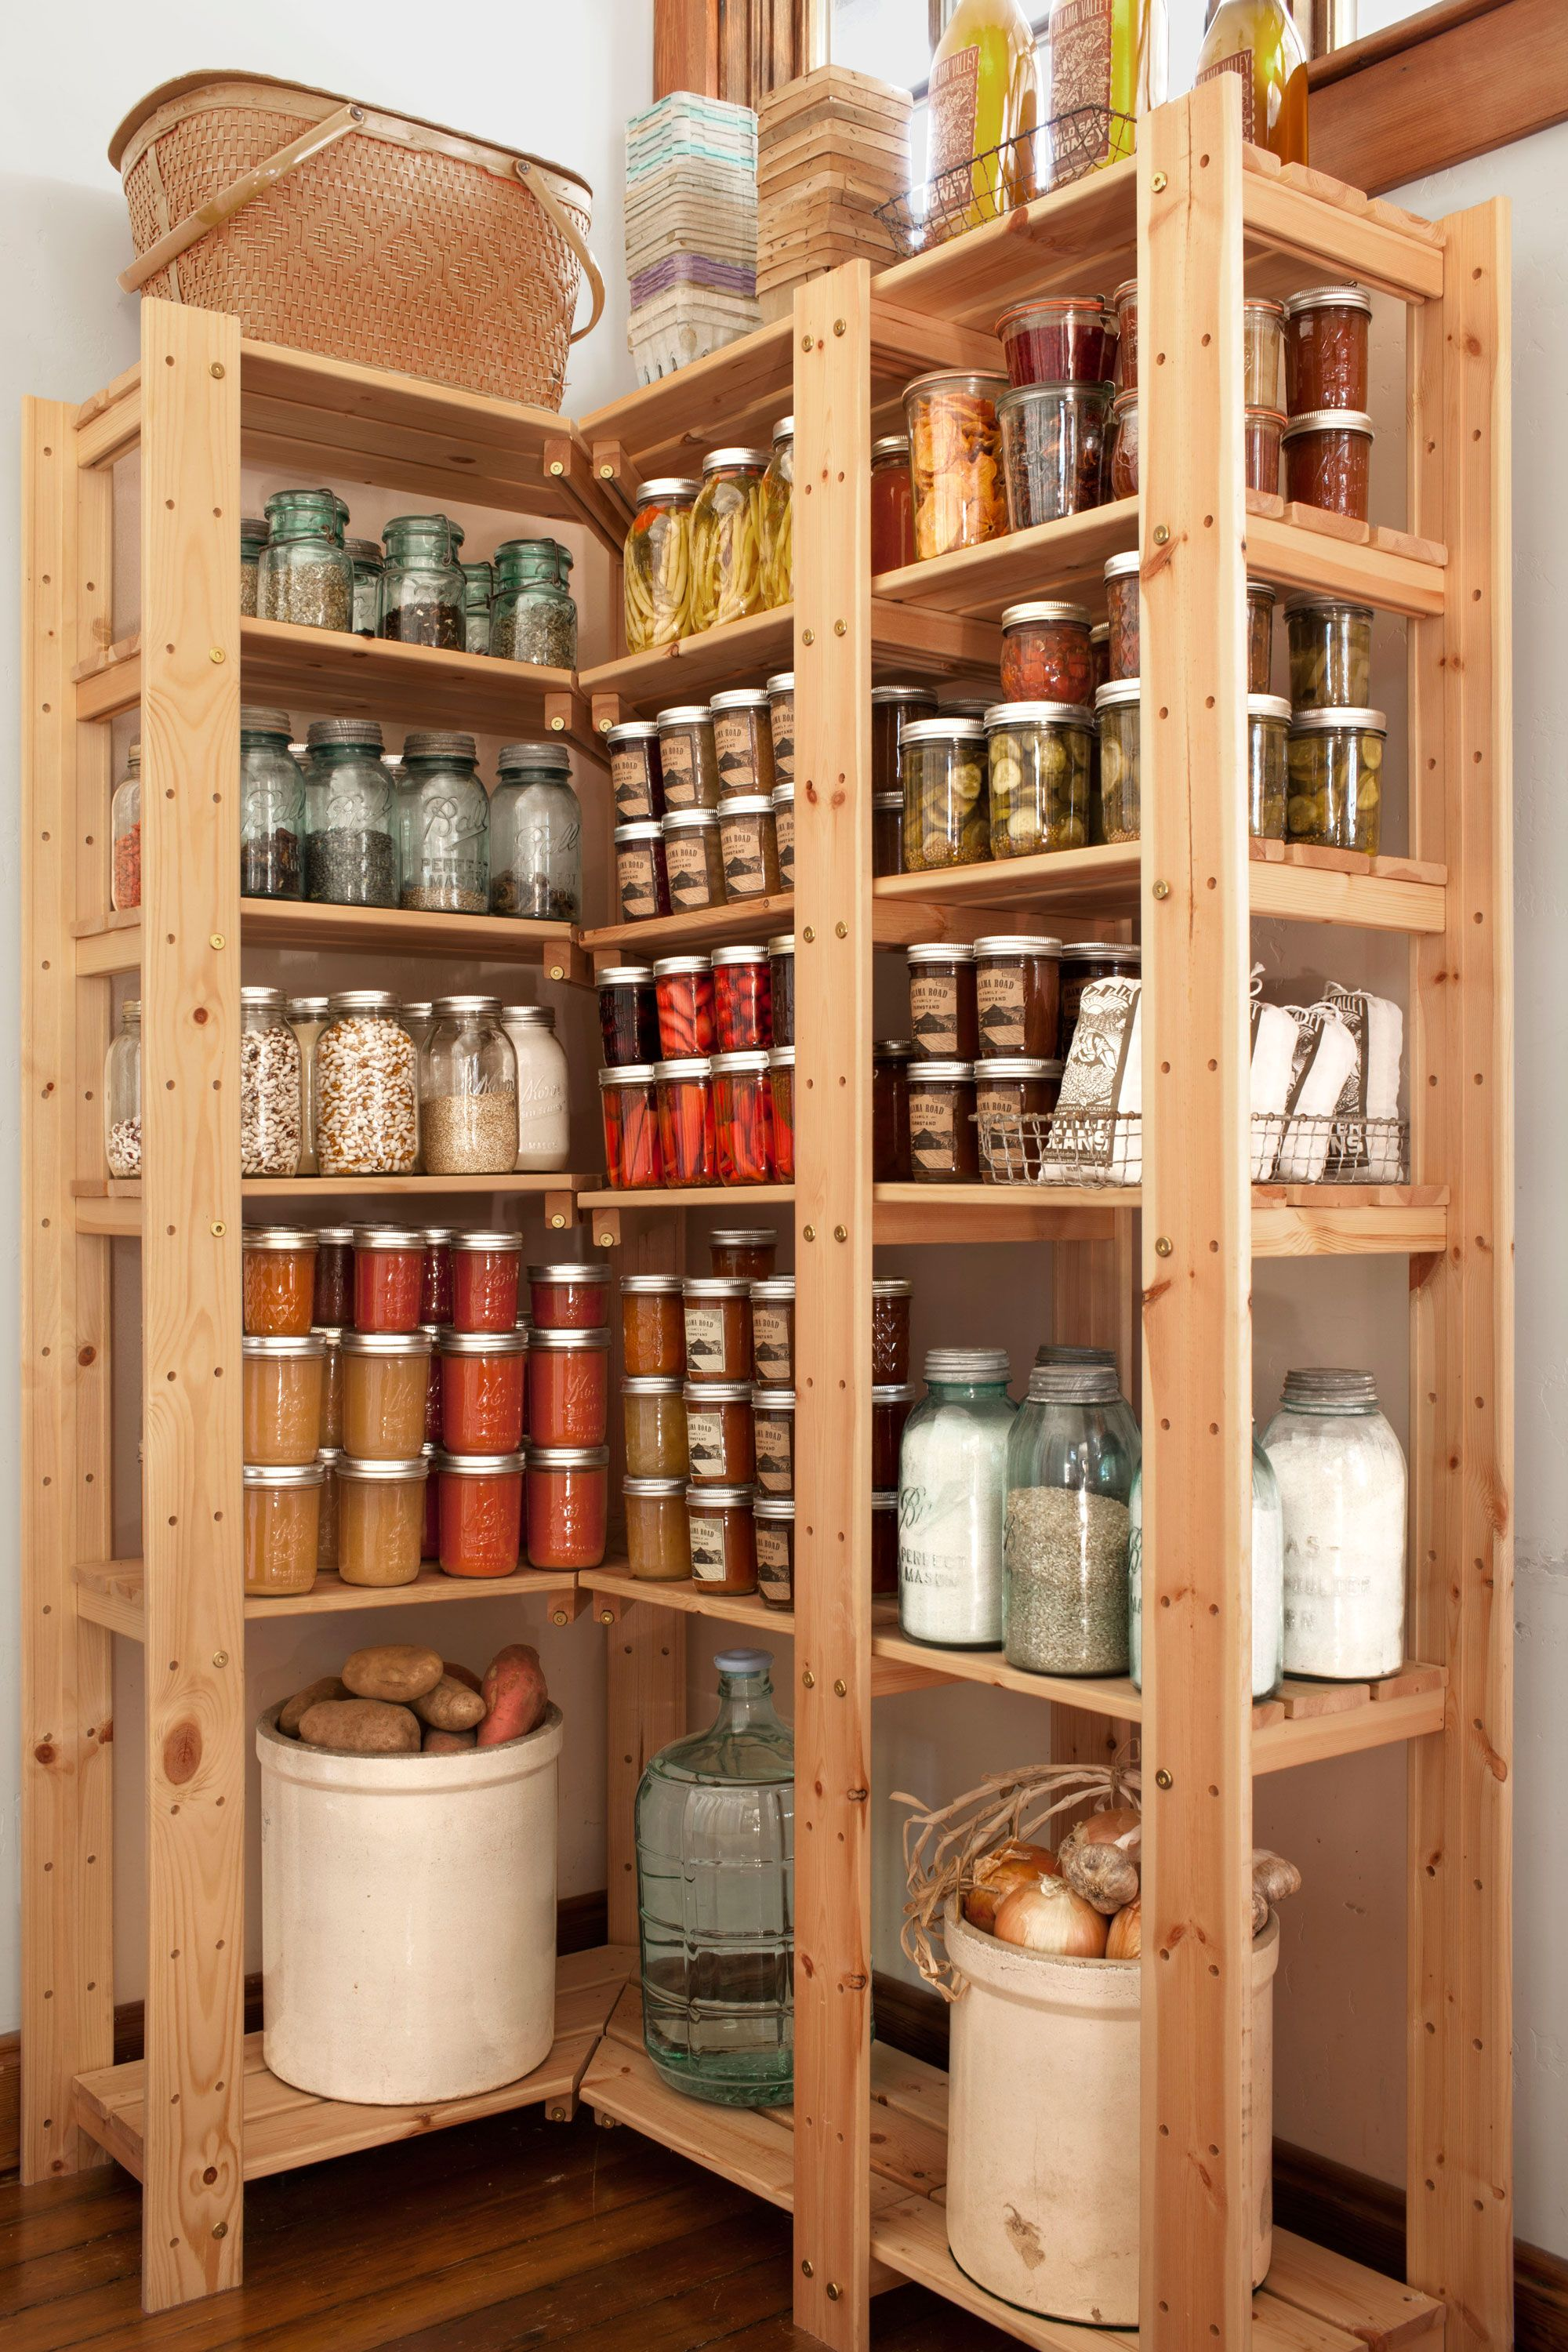 of pantries pantrys has this a very space pantry pin countertop inspiring to amount